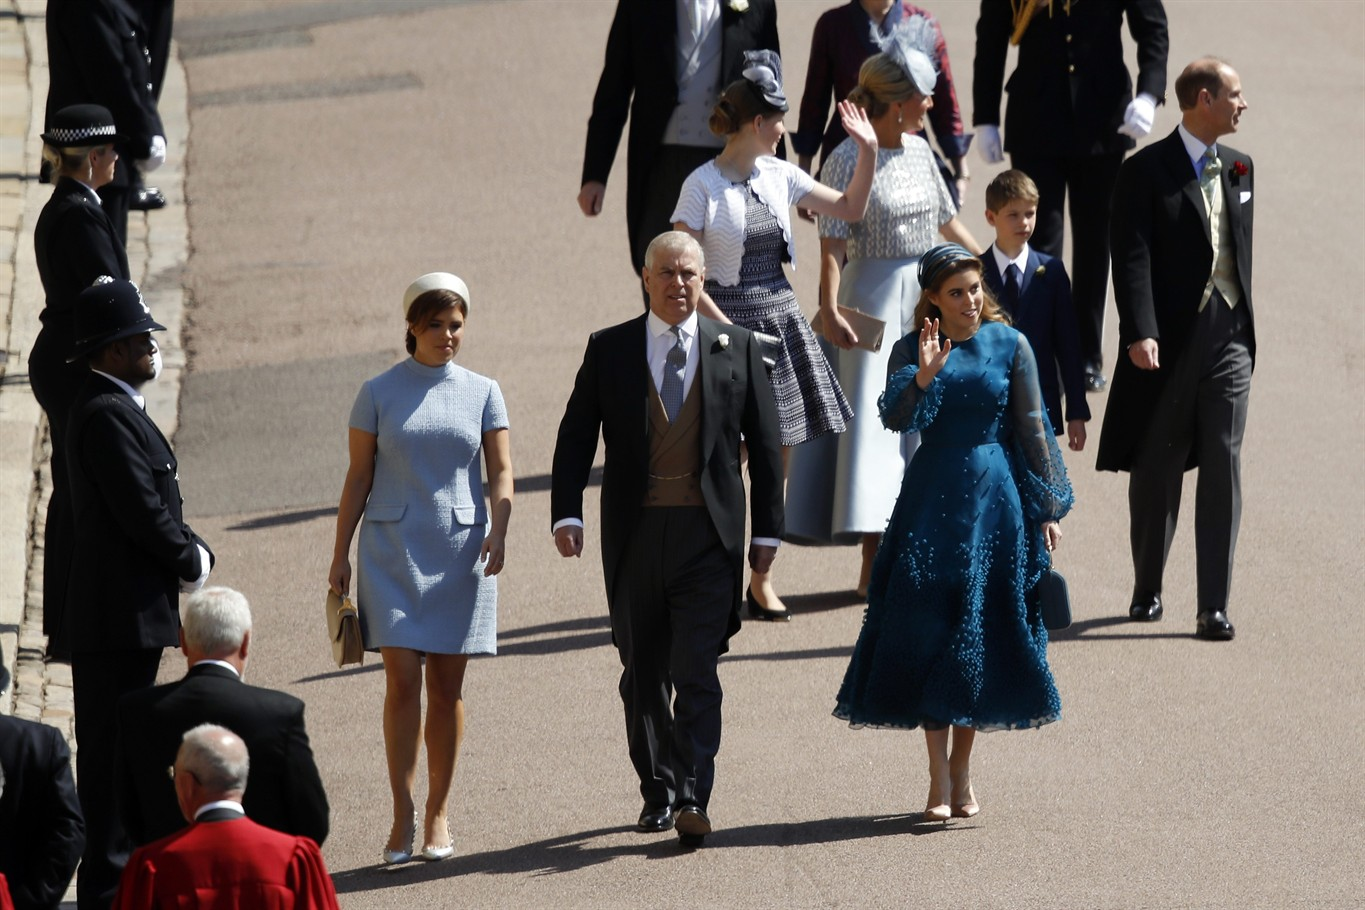 Royal Wedding Guests.It S All About The Well Plumed Hats For Royal Wedding Guests